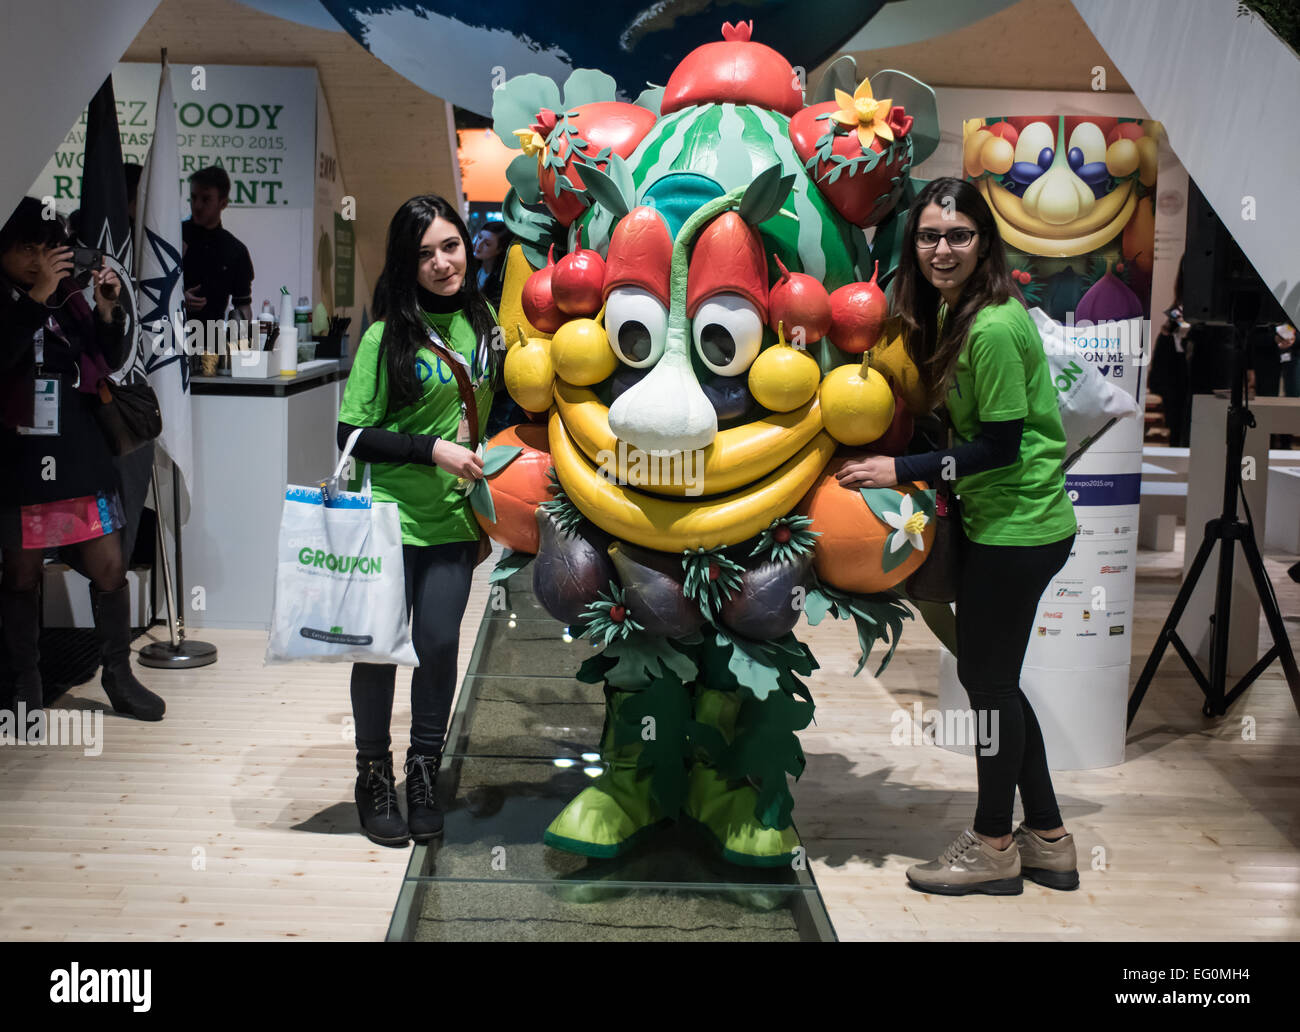 MILAN, ITALY: visitors pose with the Expo 2015 mascotte, Foody, at the Expo2015 stand during BIT at Rho-Fiera in - Stock Image